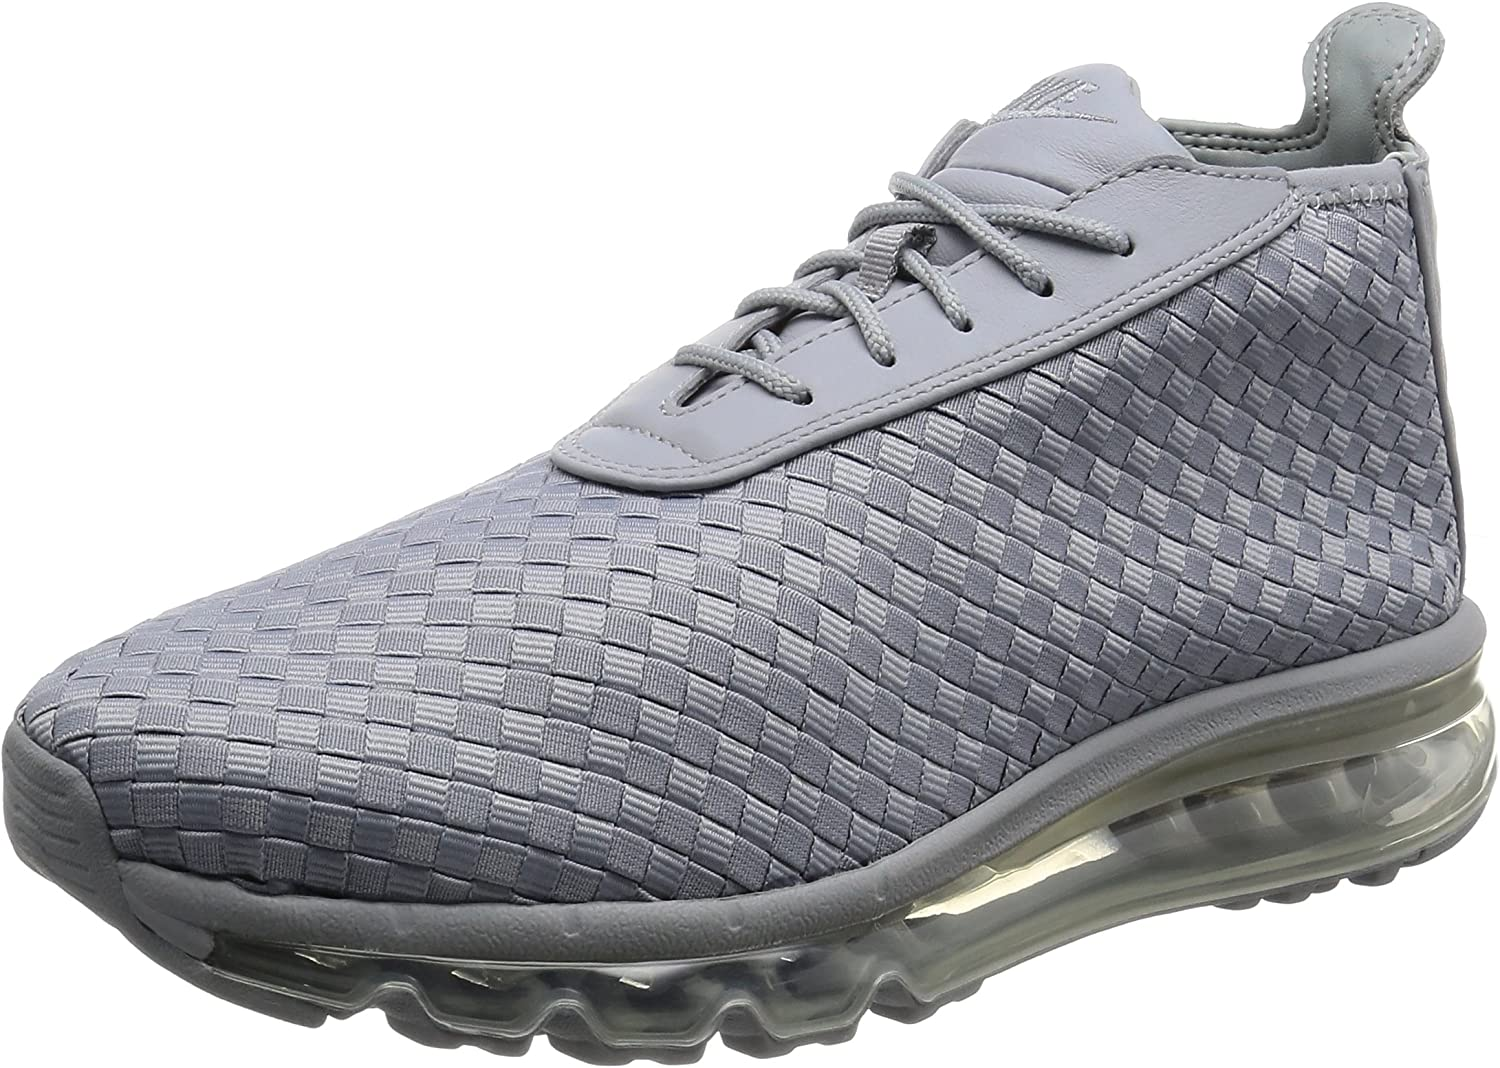 Nike Mens Air Max Woven Boot Grey White Woven Size 12